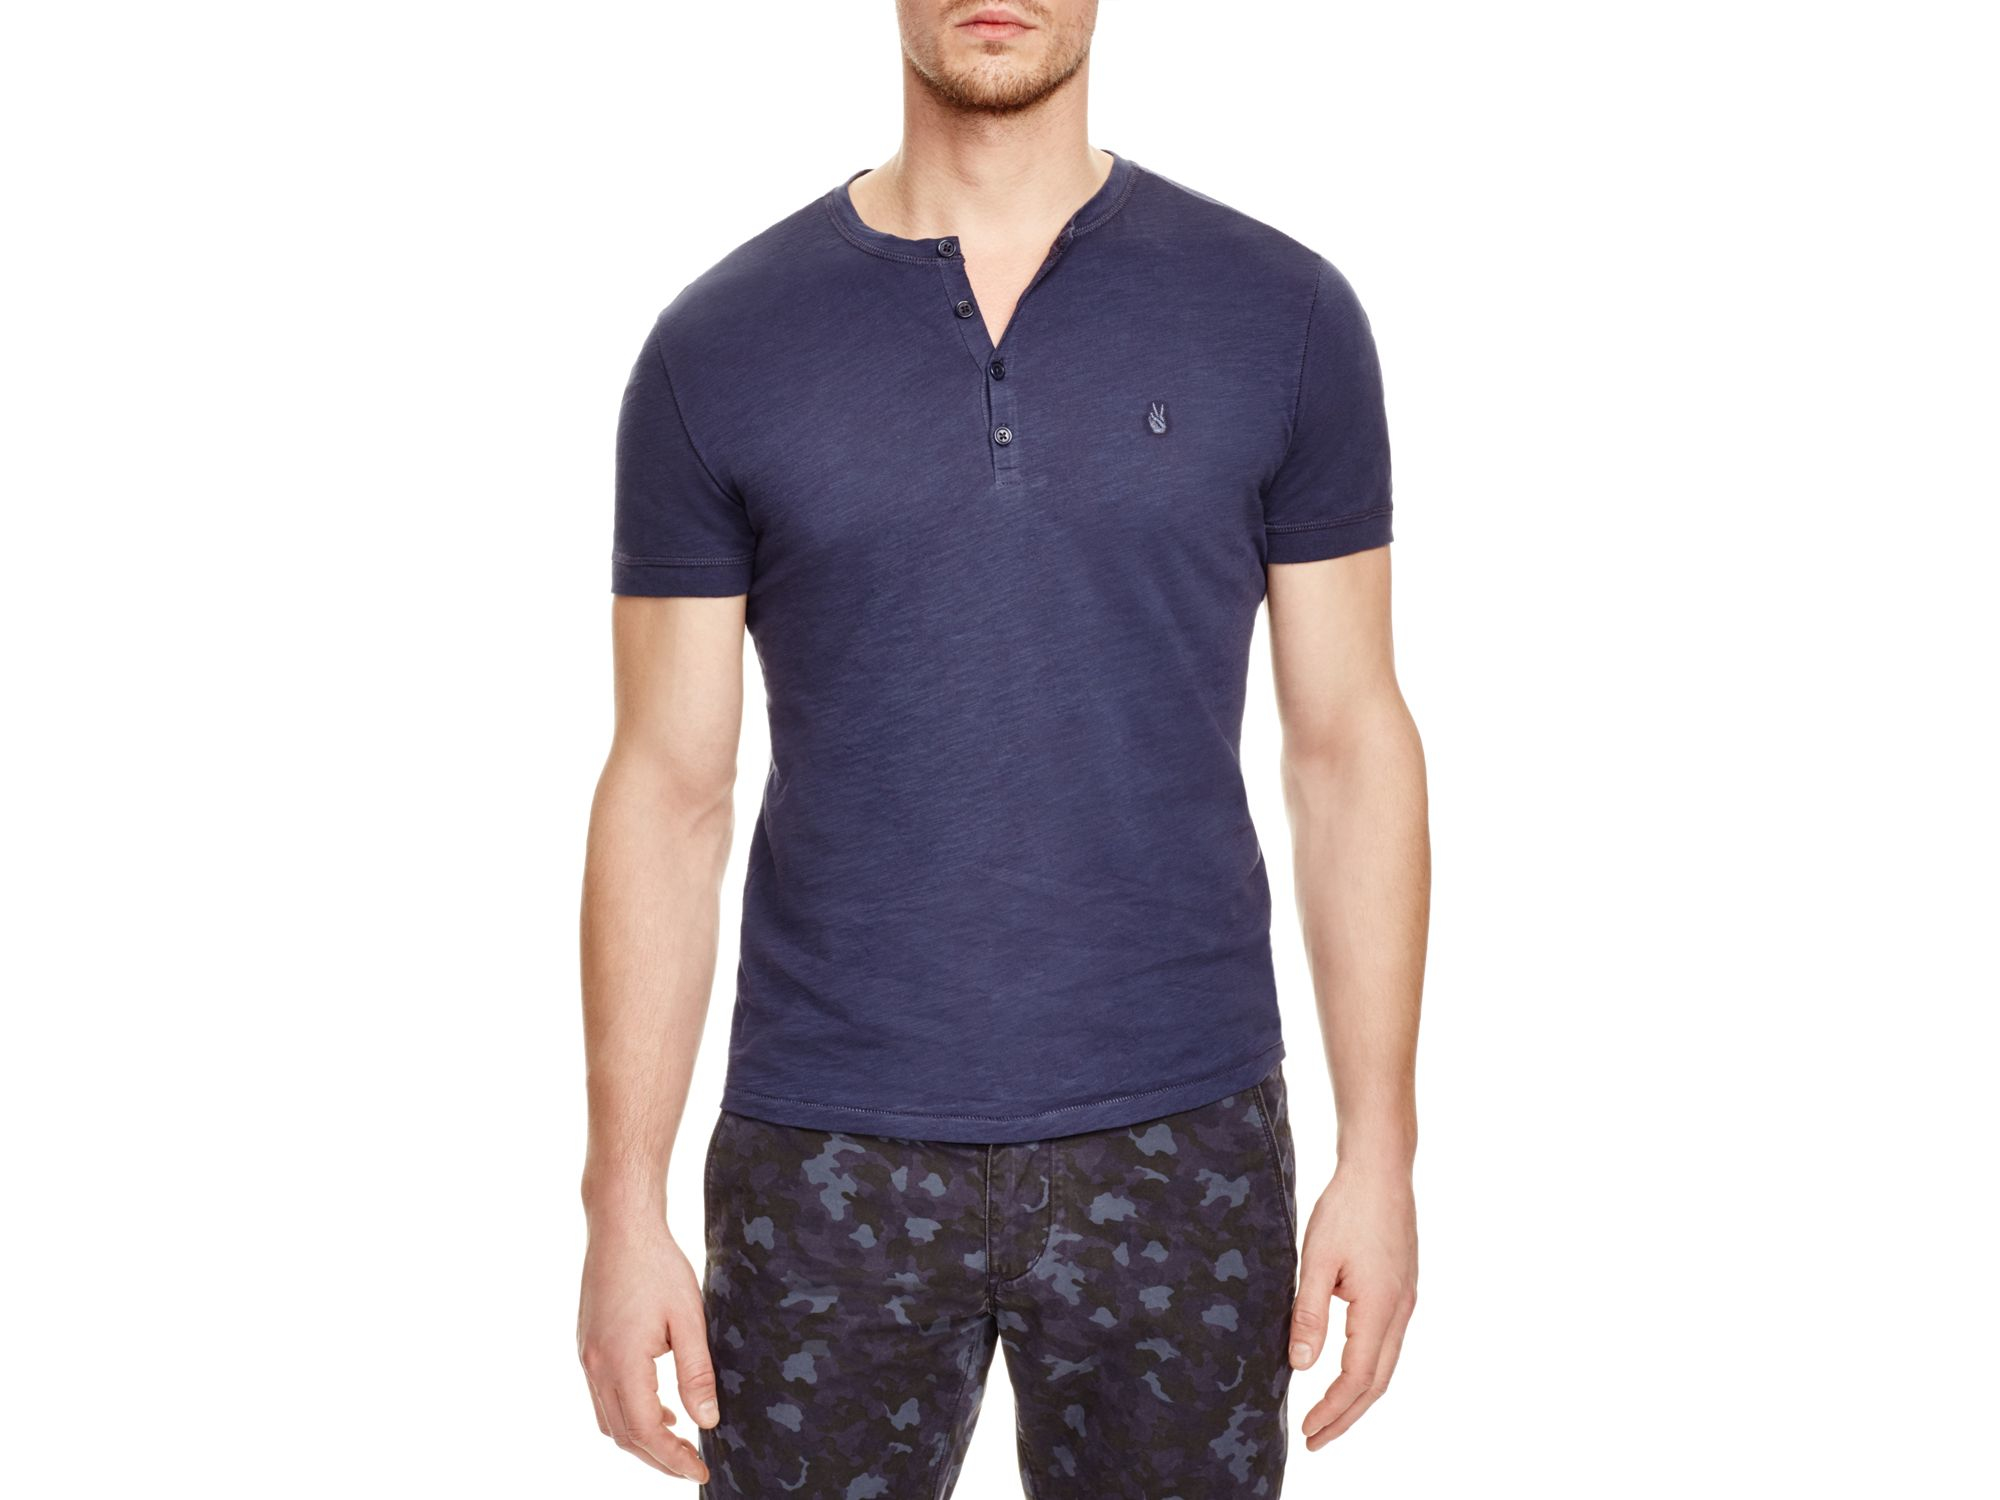 1a1b6aed John Varvatos Peace Henley Tee - 100% Bloomingdale's Exclusive in ...